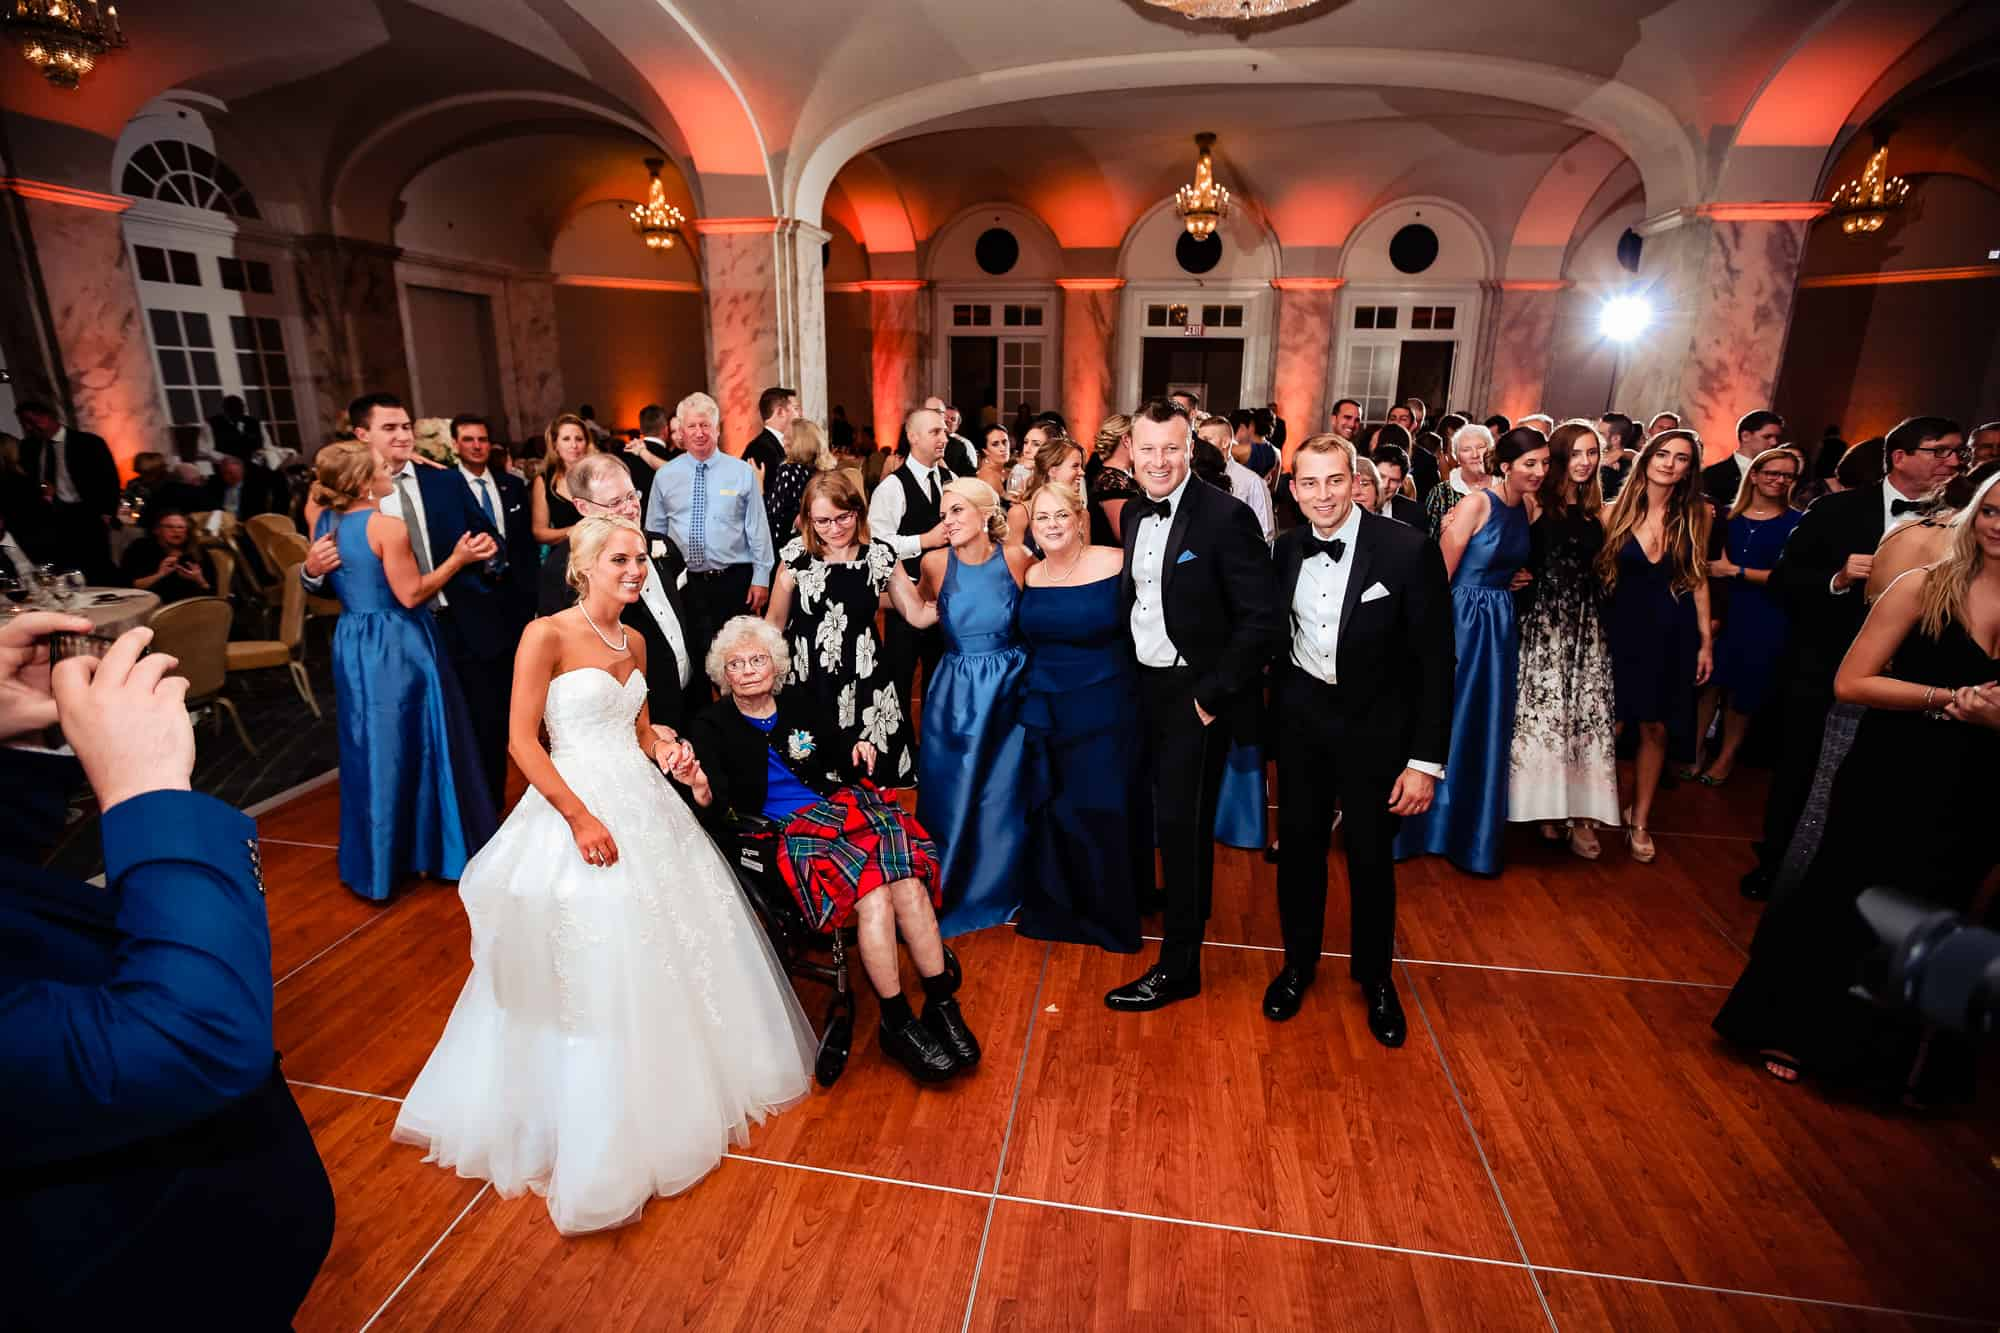 Ritz Carlton Philadelphia Wedding|bride and groom with family and friends during wedding reception